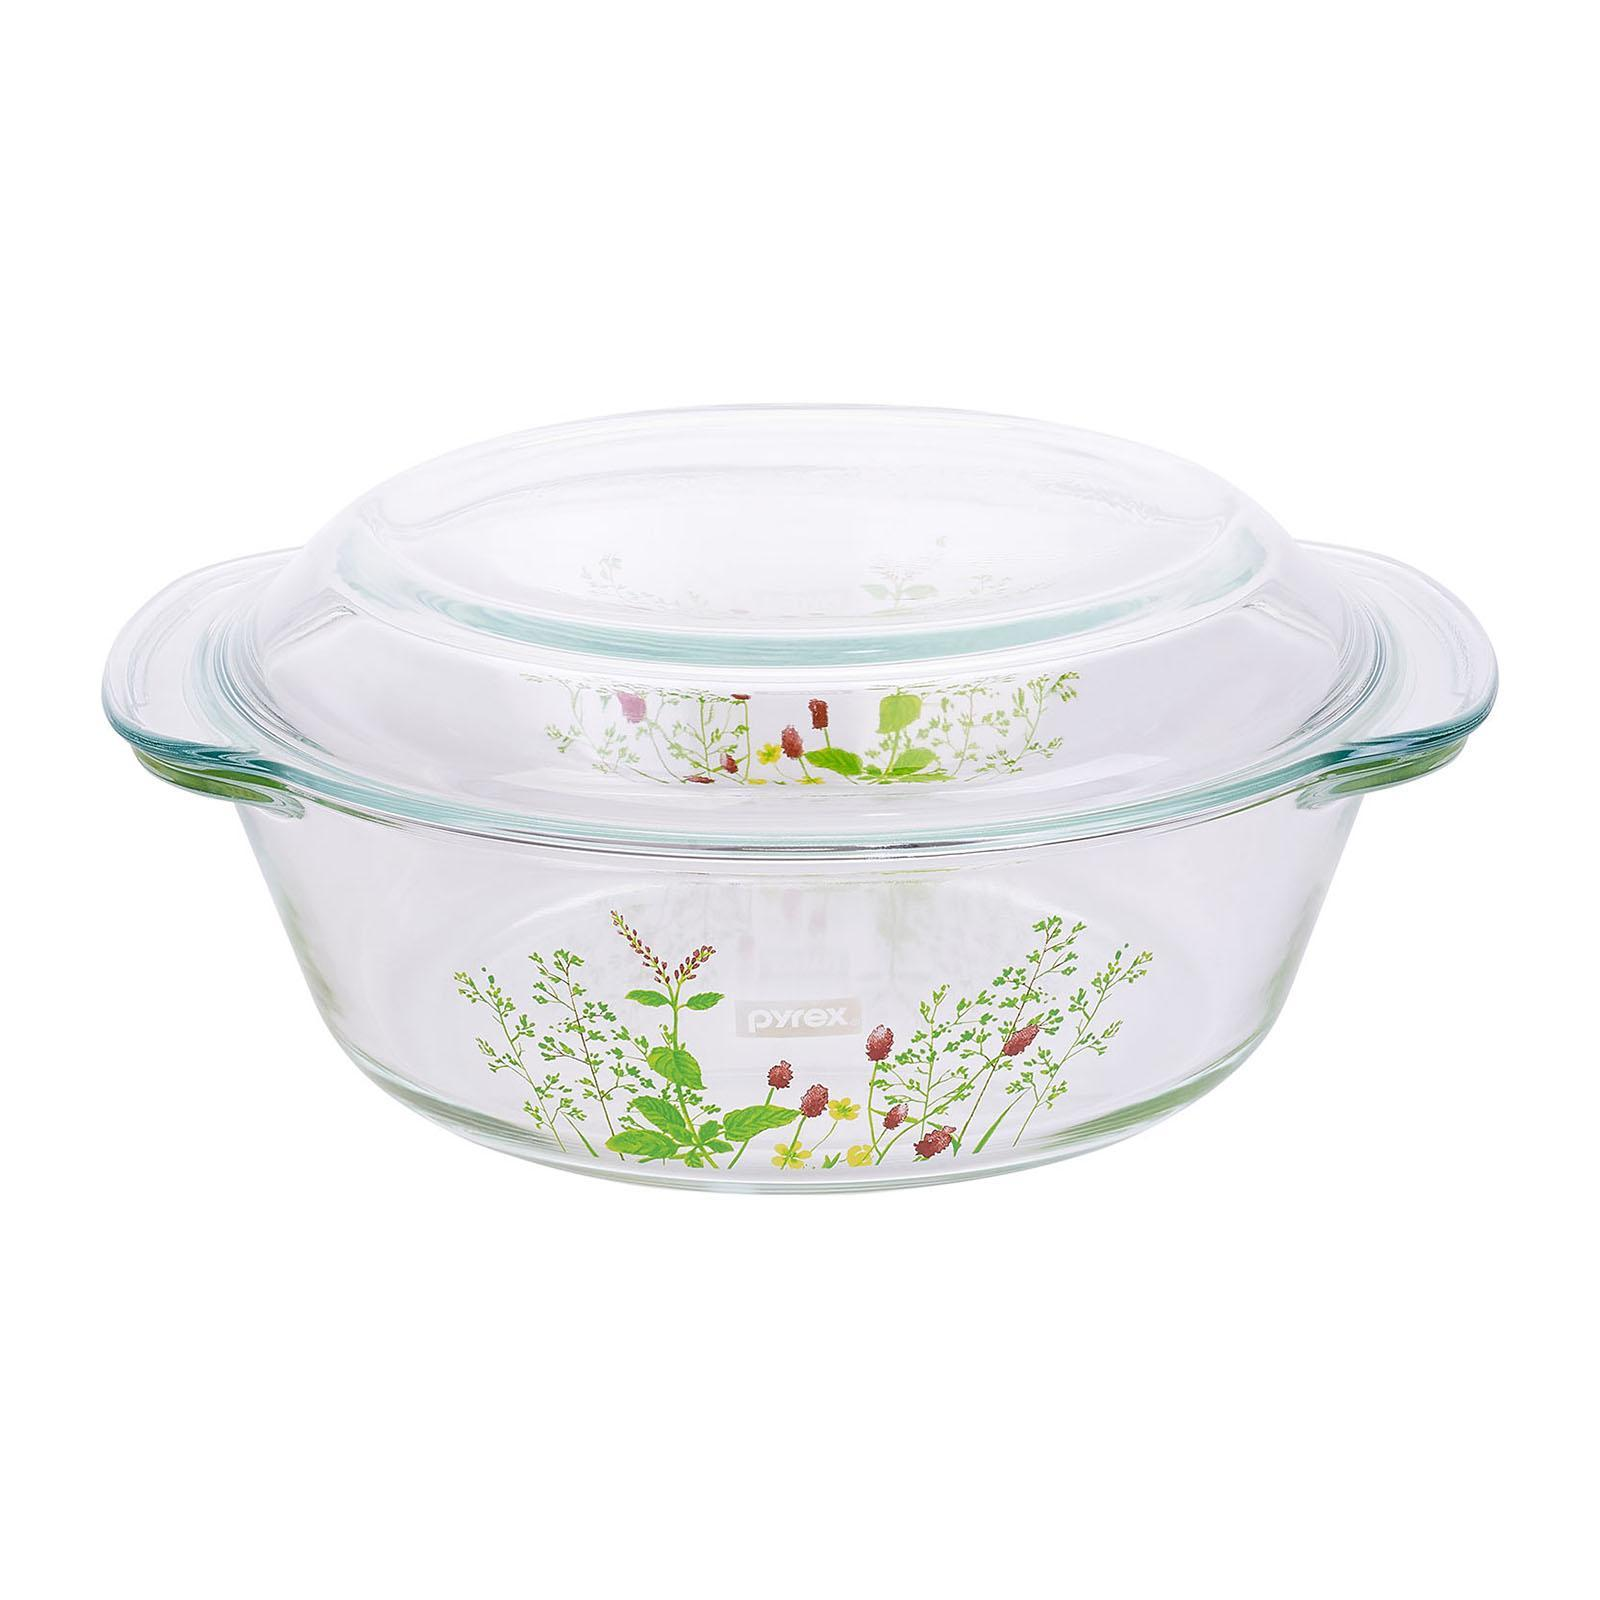 Pyrex 2.0L Casserole with Lid - Provence Garden